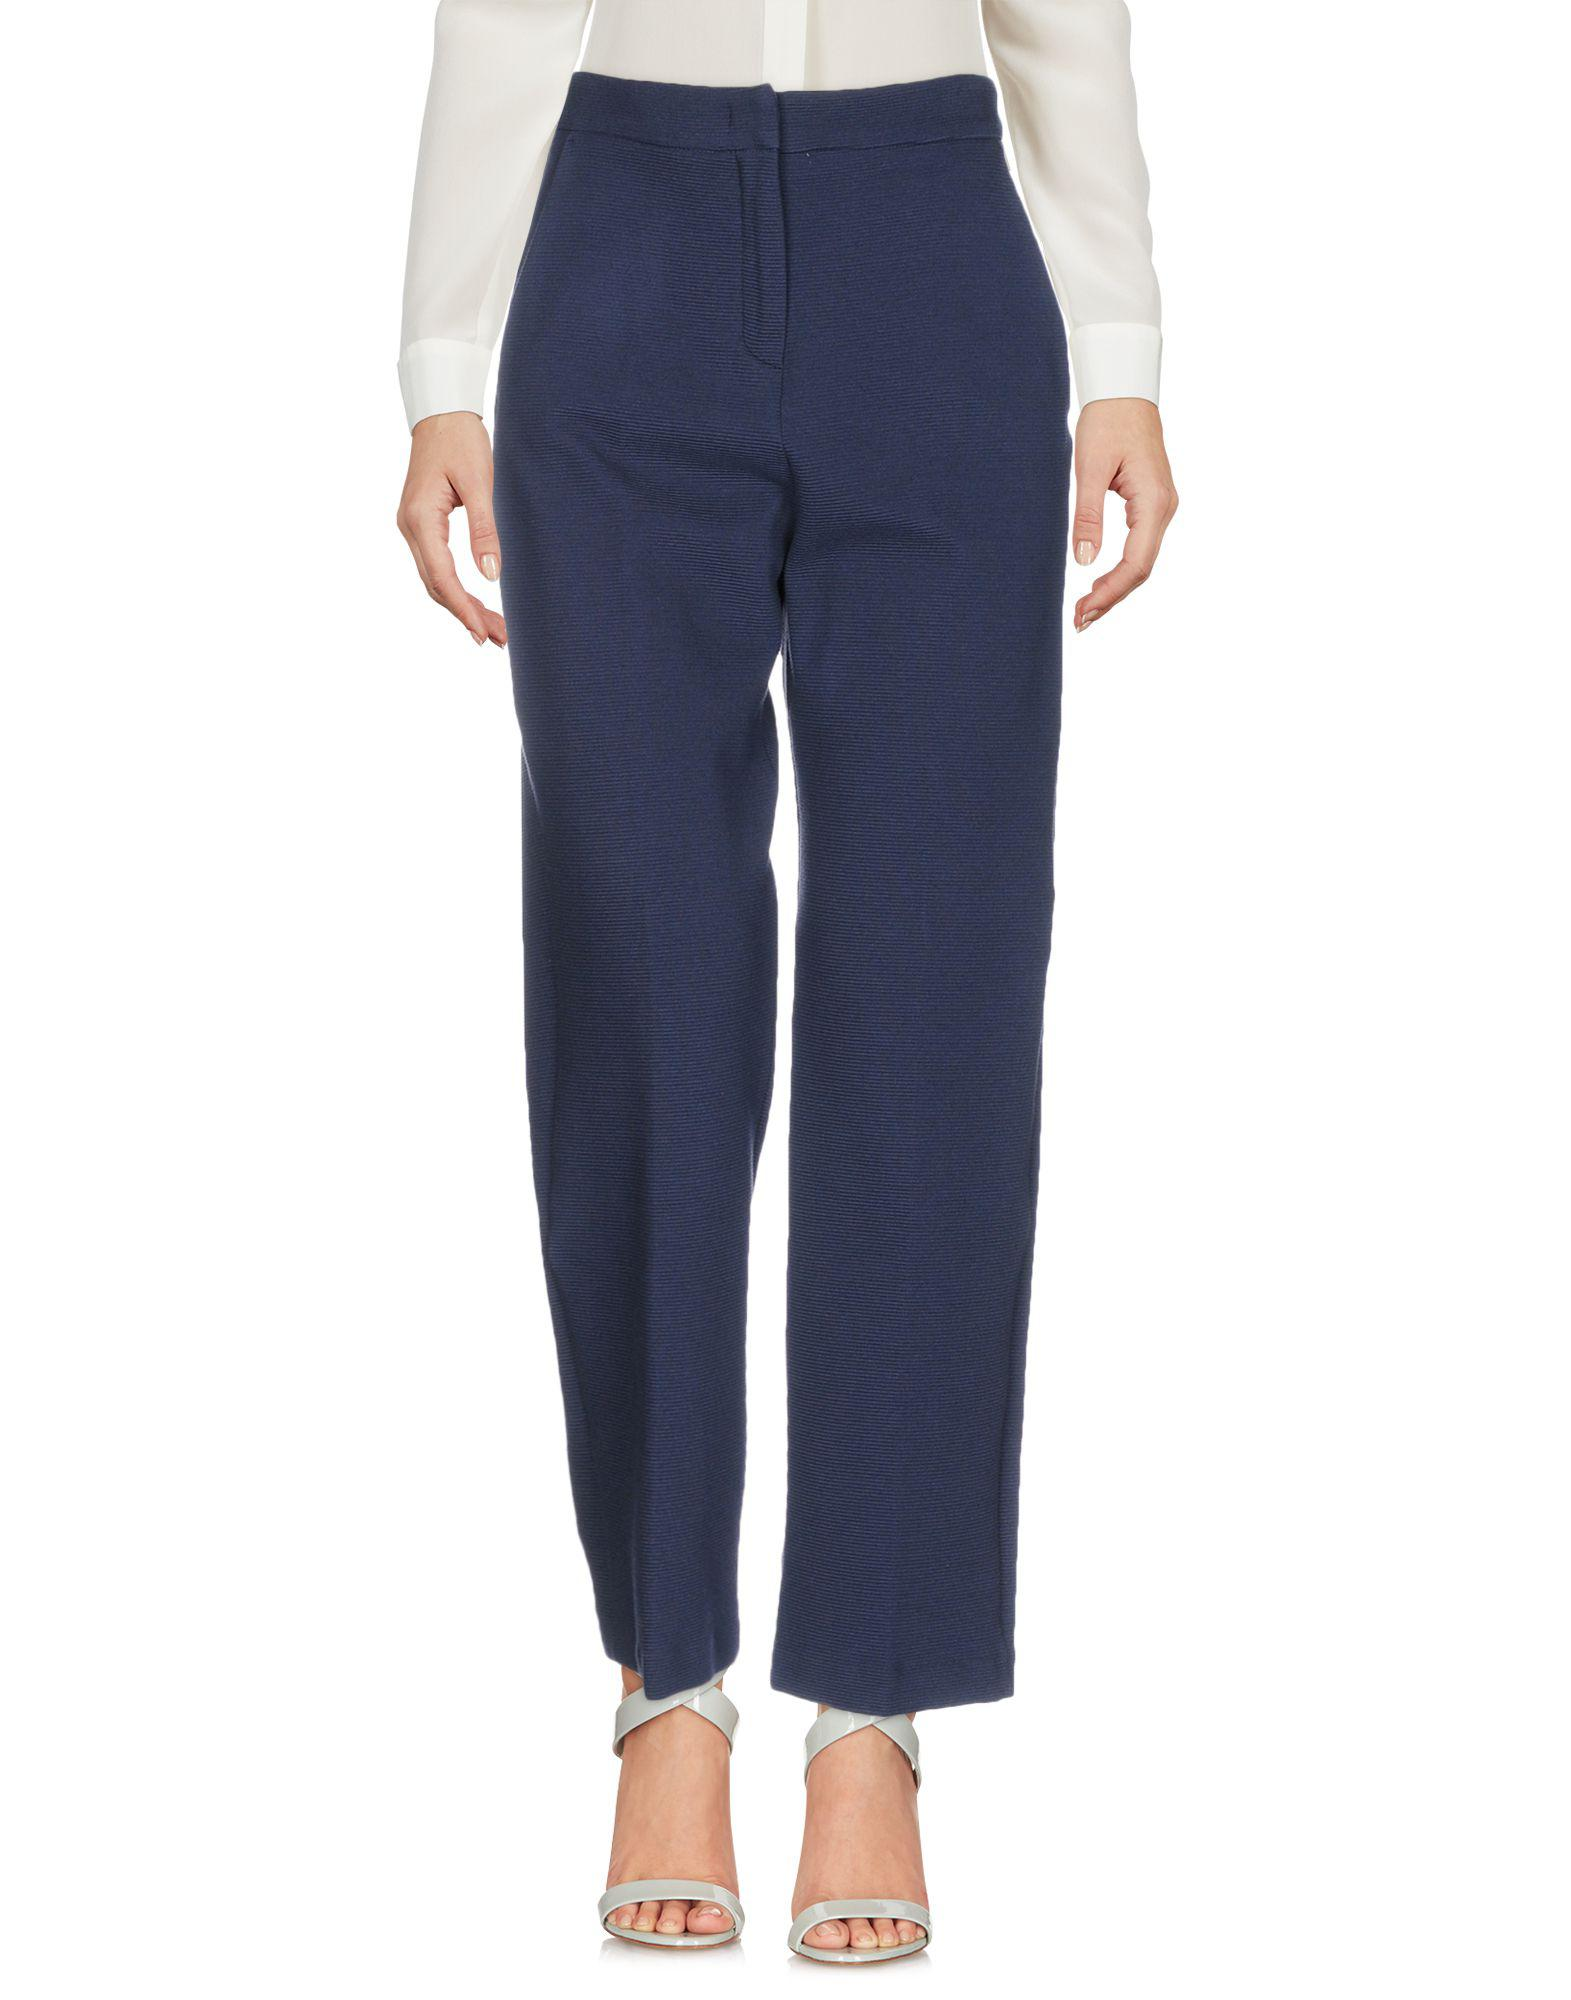 Buy Authentic Online Sale Professional TROUSERS - Casual trousers Haal 2018 Online Factory Outlet Online ax2mib